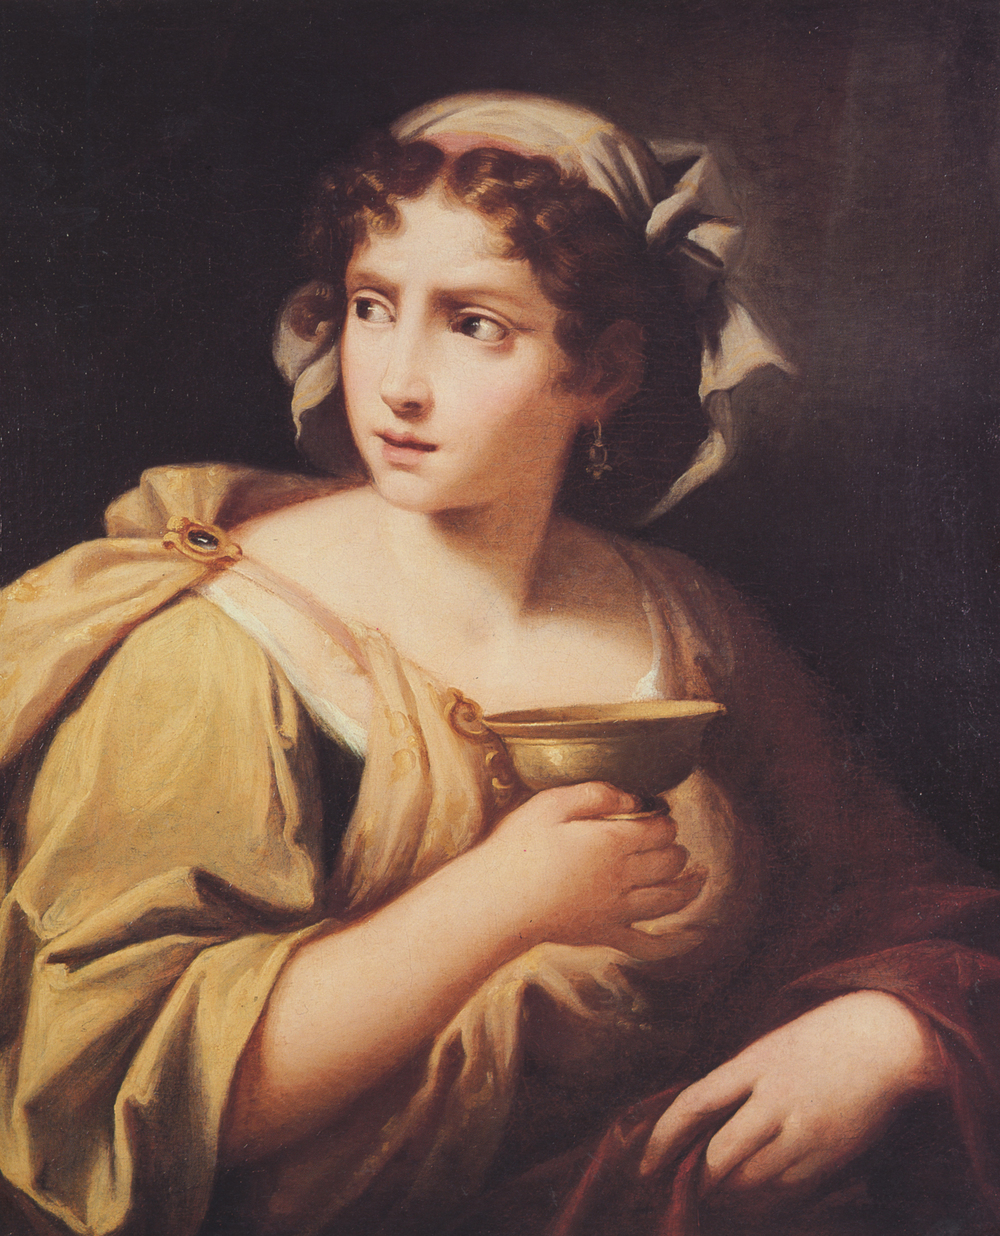 Figure 1 Sofonisba Oil on canvas, 75 x 62 cm Torino, private collection (Baroncini, plate I)